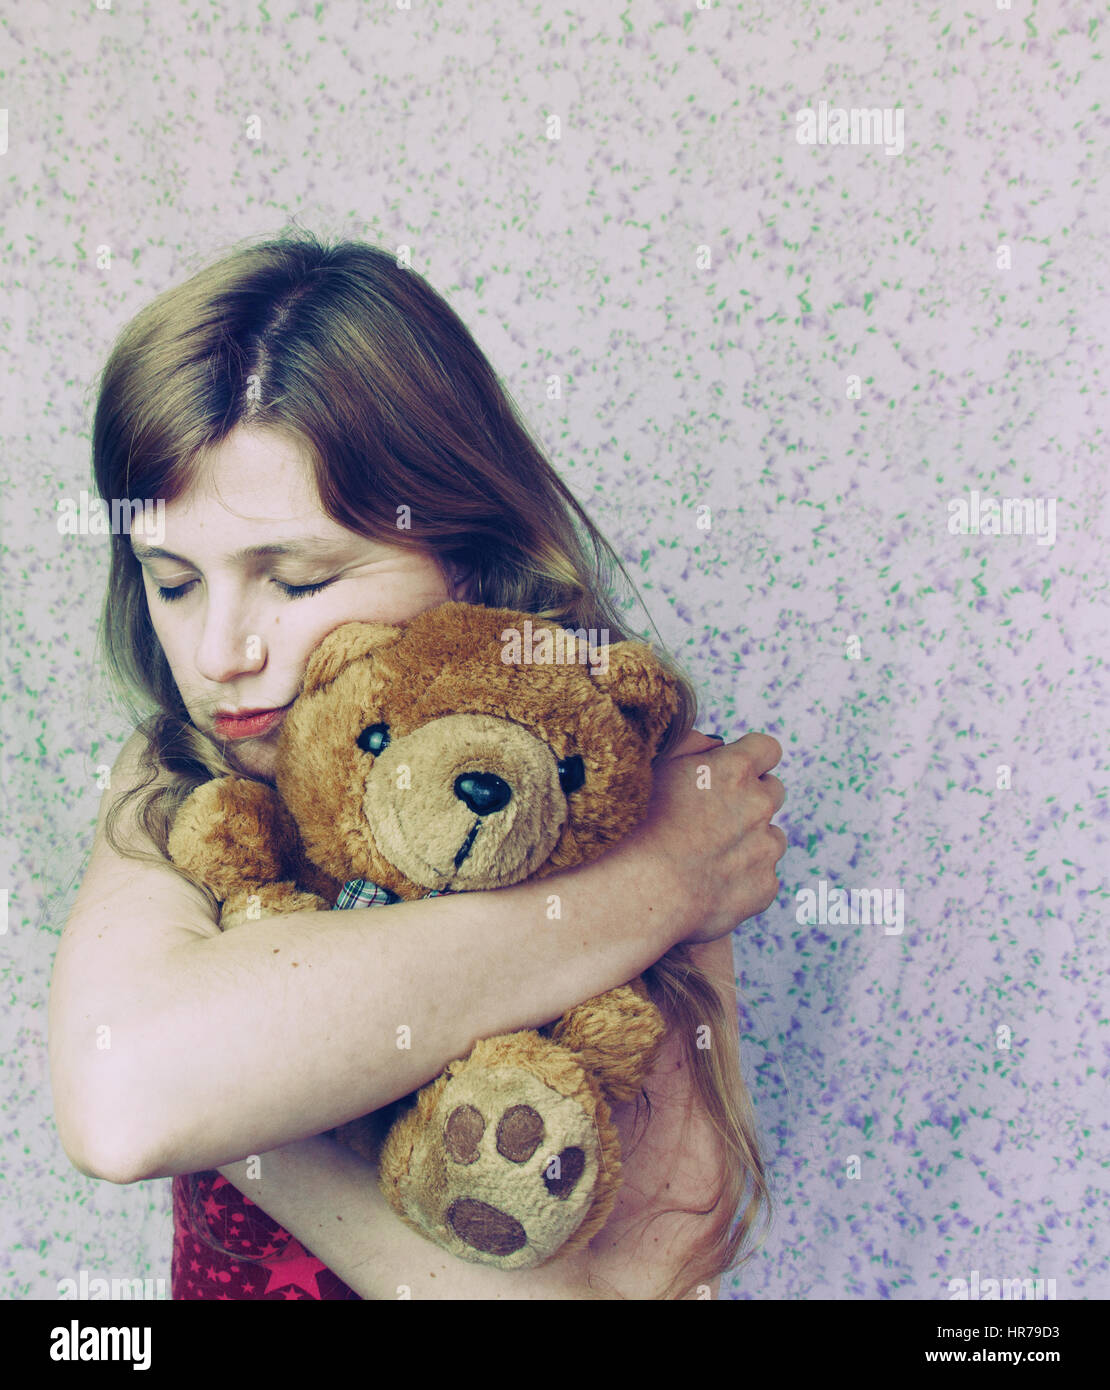 Someone with her teddy bear, like a child - Stock Image